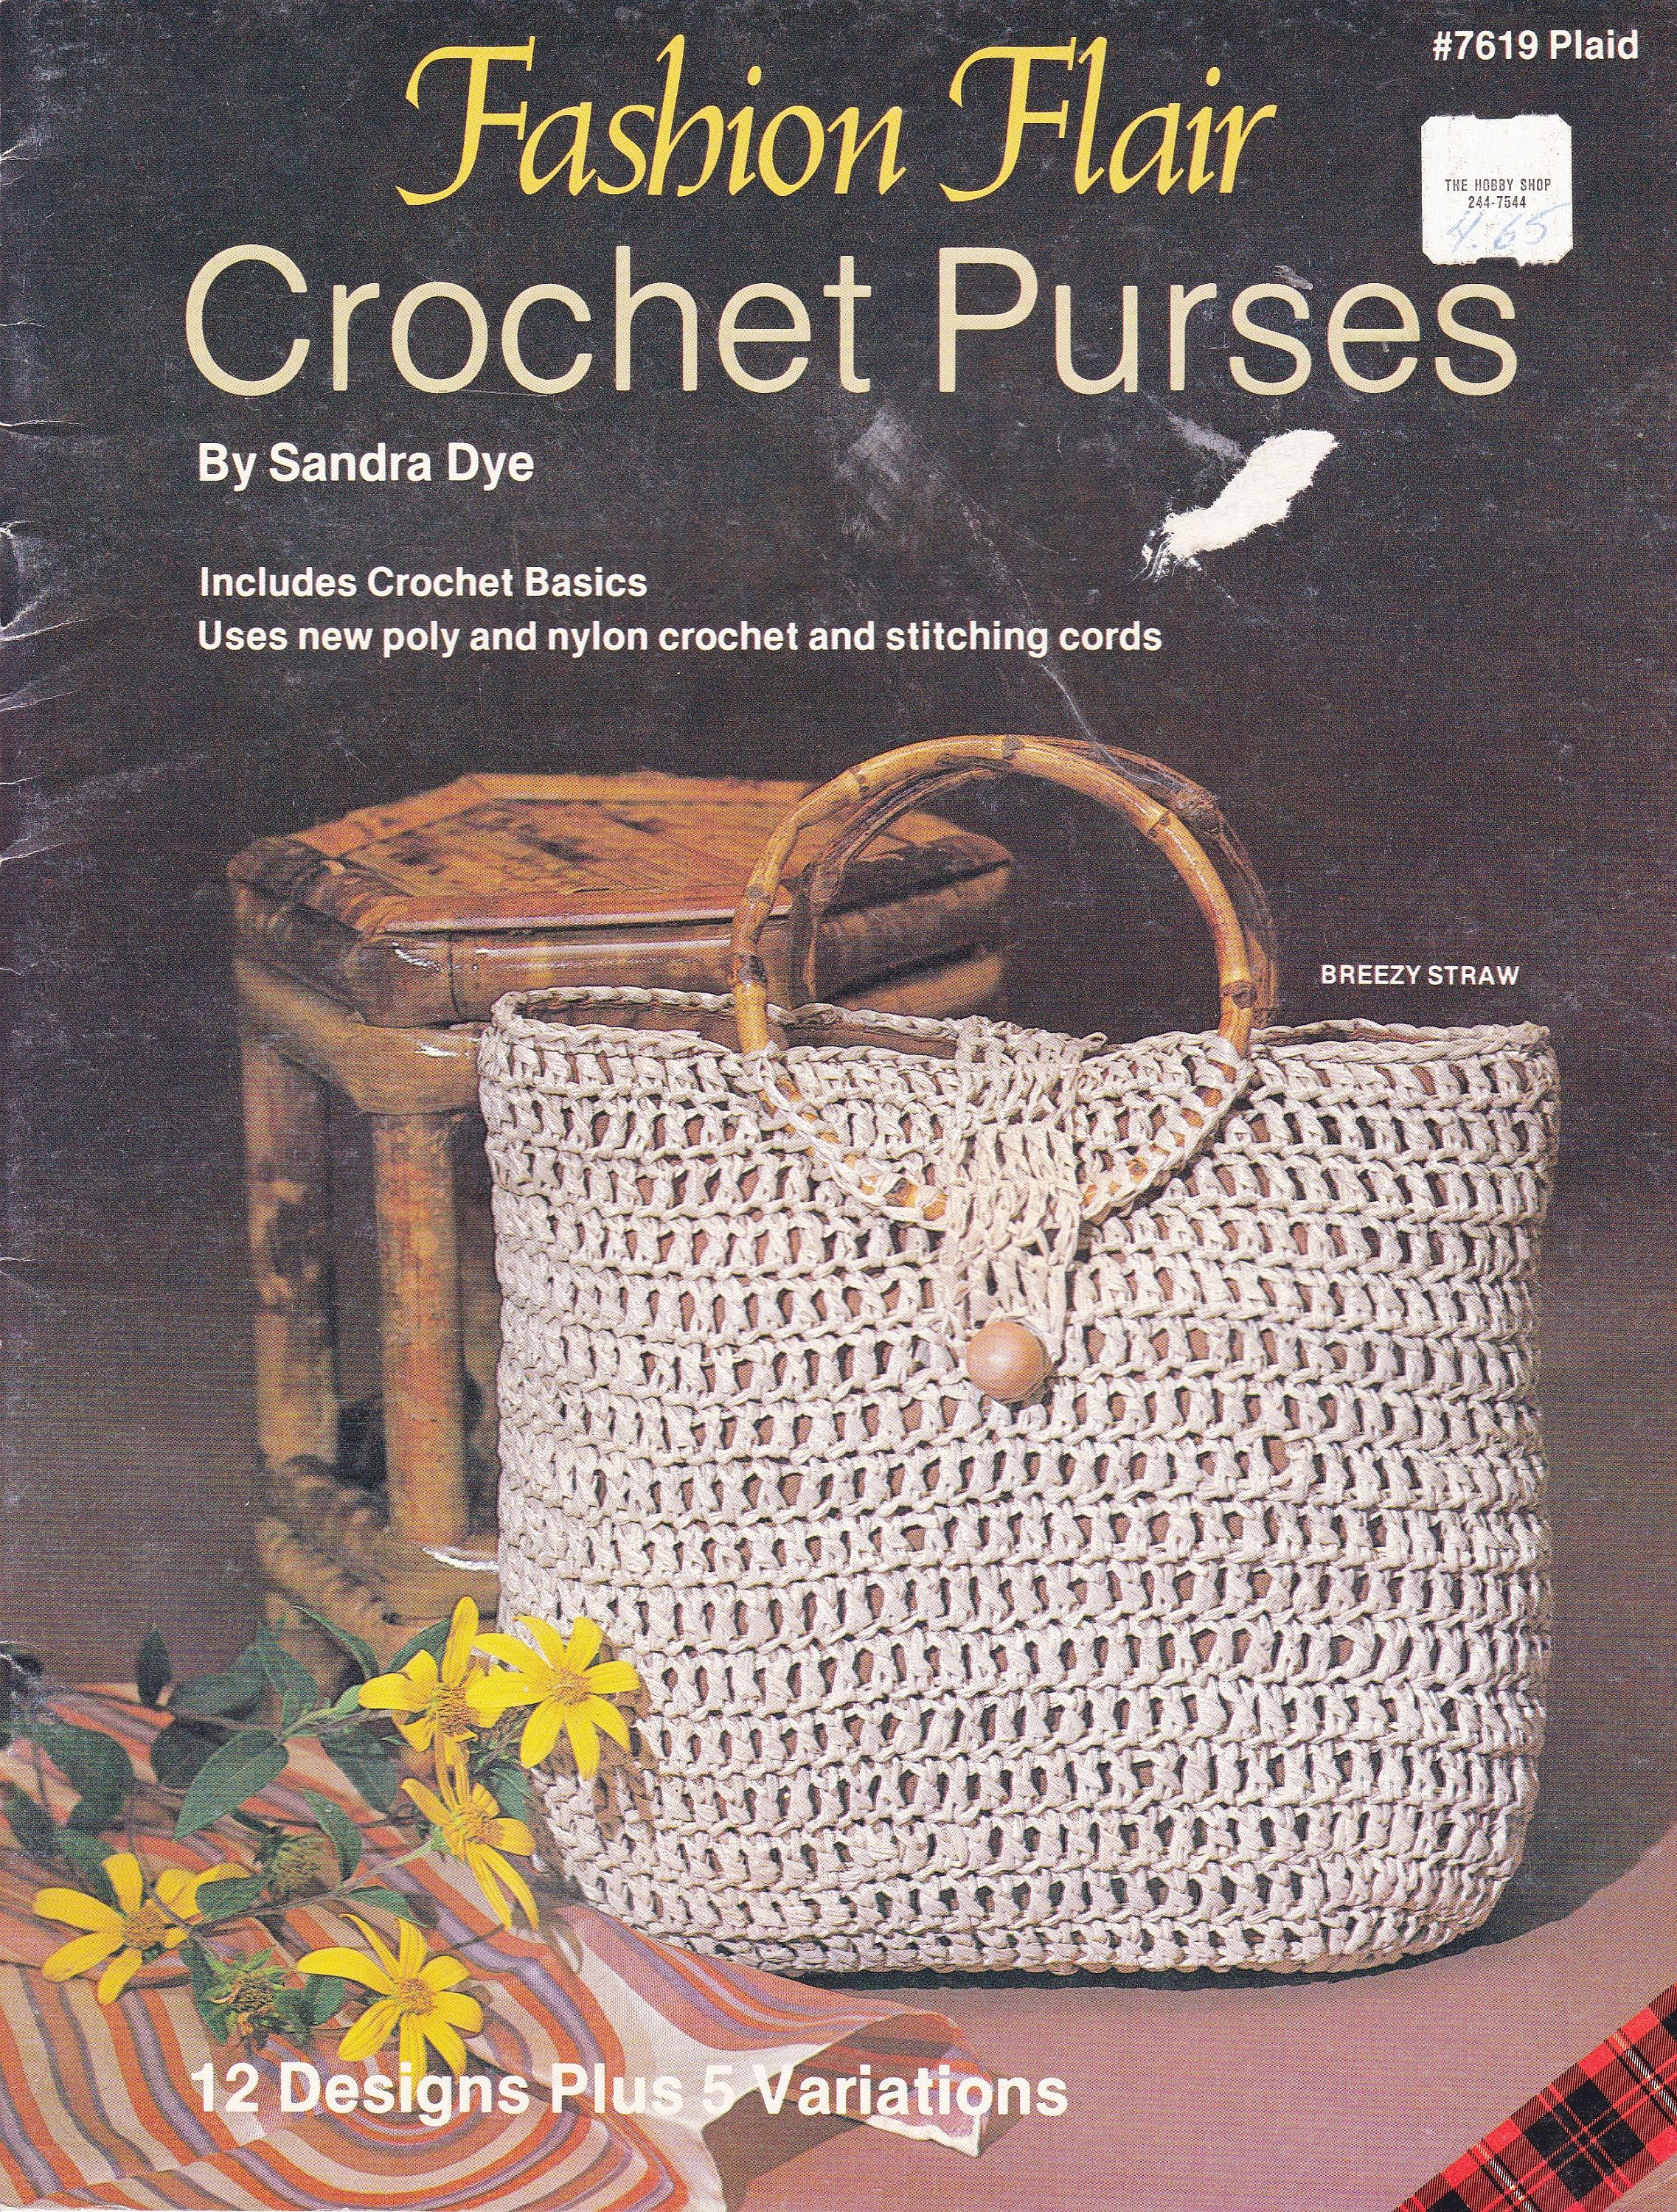 Fashion Flair Crochet Purses Patterns, 12 Purse and Clutch Crochet Patterns  and 5 Variations, Includes the How To Crochet Basics, by OnceUponAnHeirloom  on ...